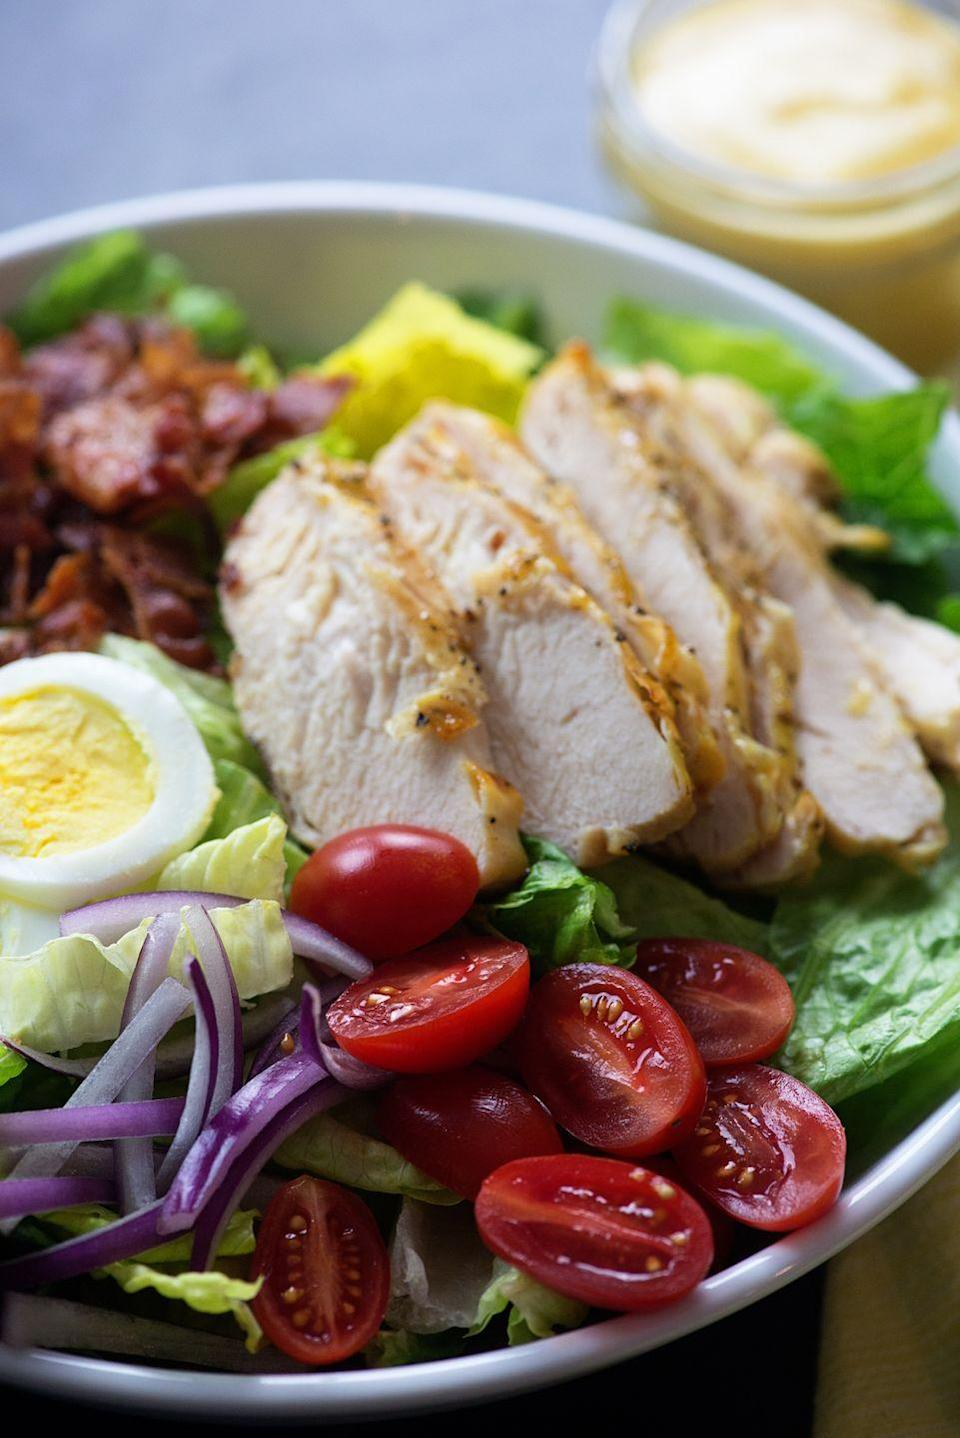 """<p>Honey and mustard were MFEO.</p><p>Get the recipe from <a href=""""https://www.delish.com/cooking/recipe-ideas/recipes/a53057/grilled-honey-mustard-chicken-salad-recipe/"""" rel=""""nofollow noopener"""" target=""""_blank"""" data-ylk=""""slk:Delish"""" class=""""link rapid-noclick-resp"""">Delish</a>.</p>"""